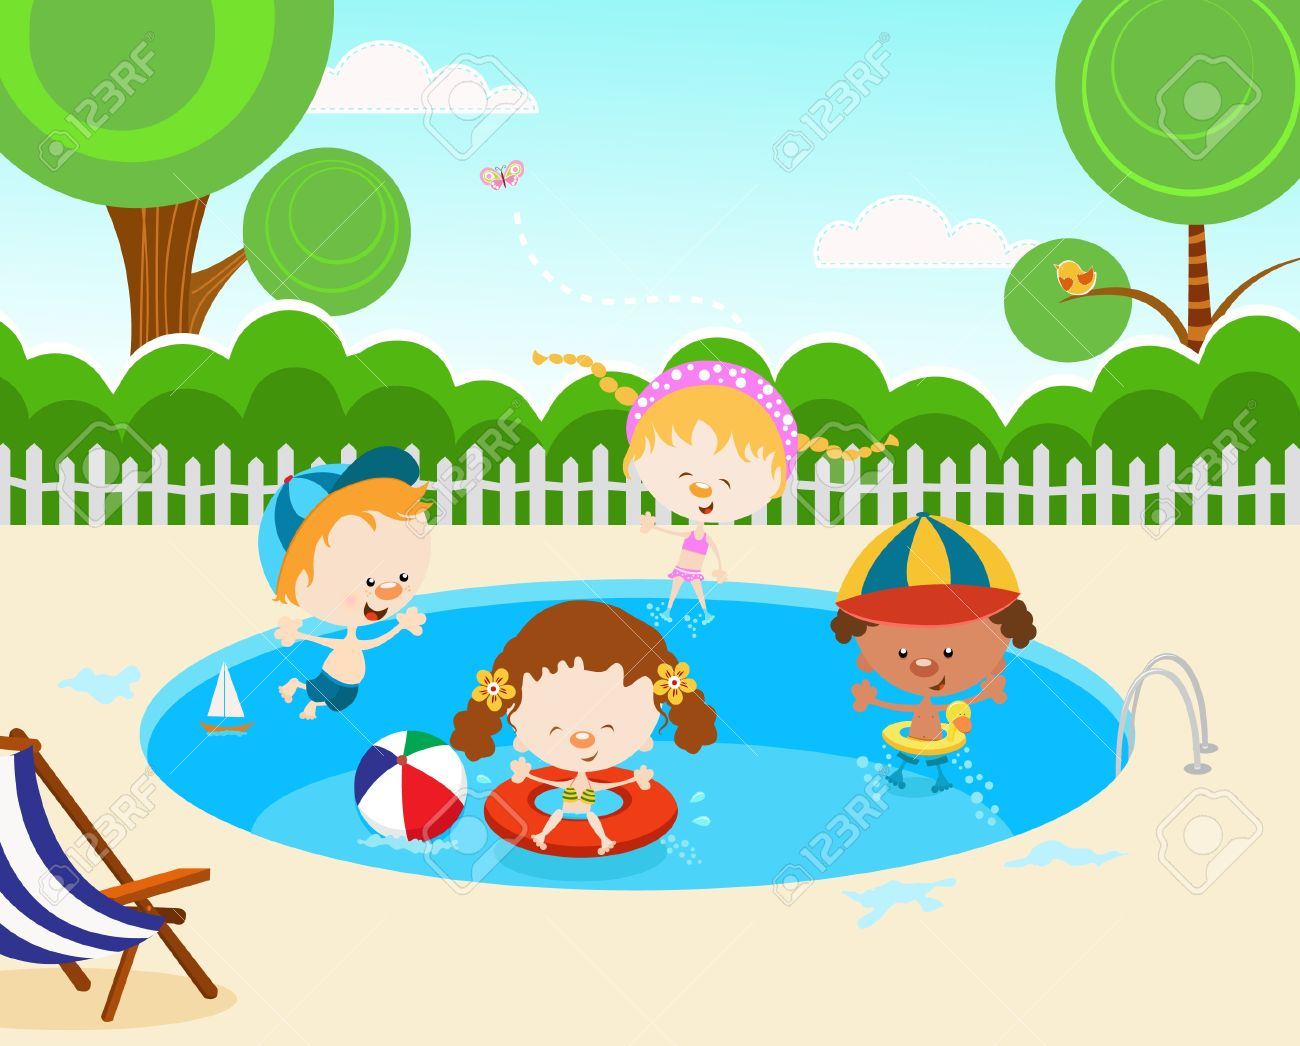 Kids In Swimming Pool Royalty Free Cliparts, Vectors, And Stock.